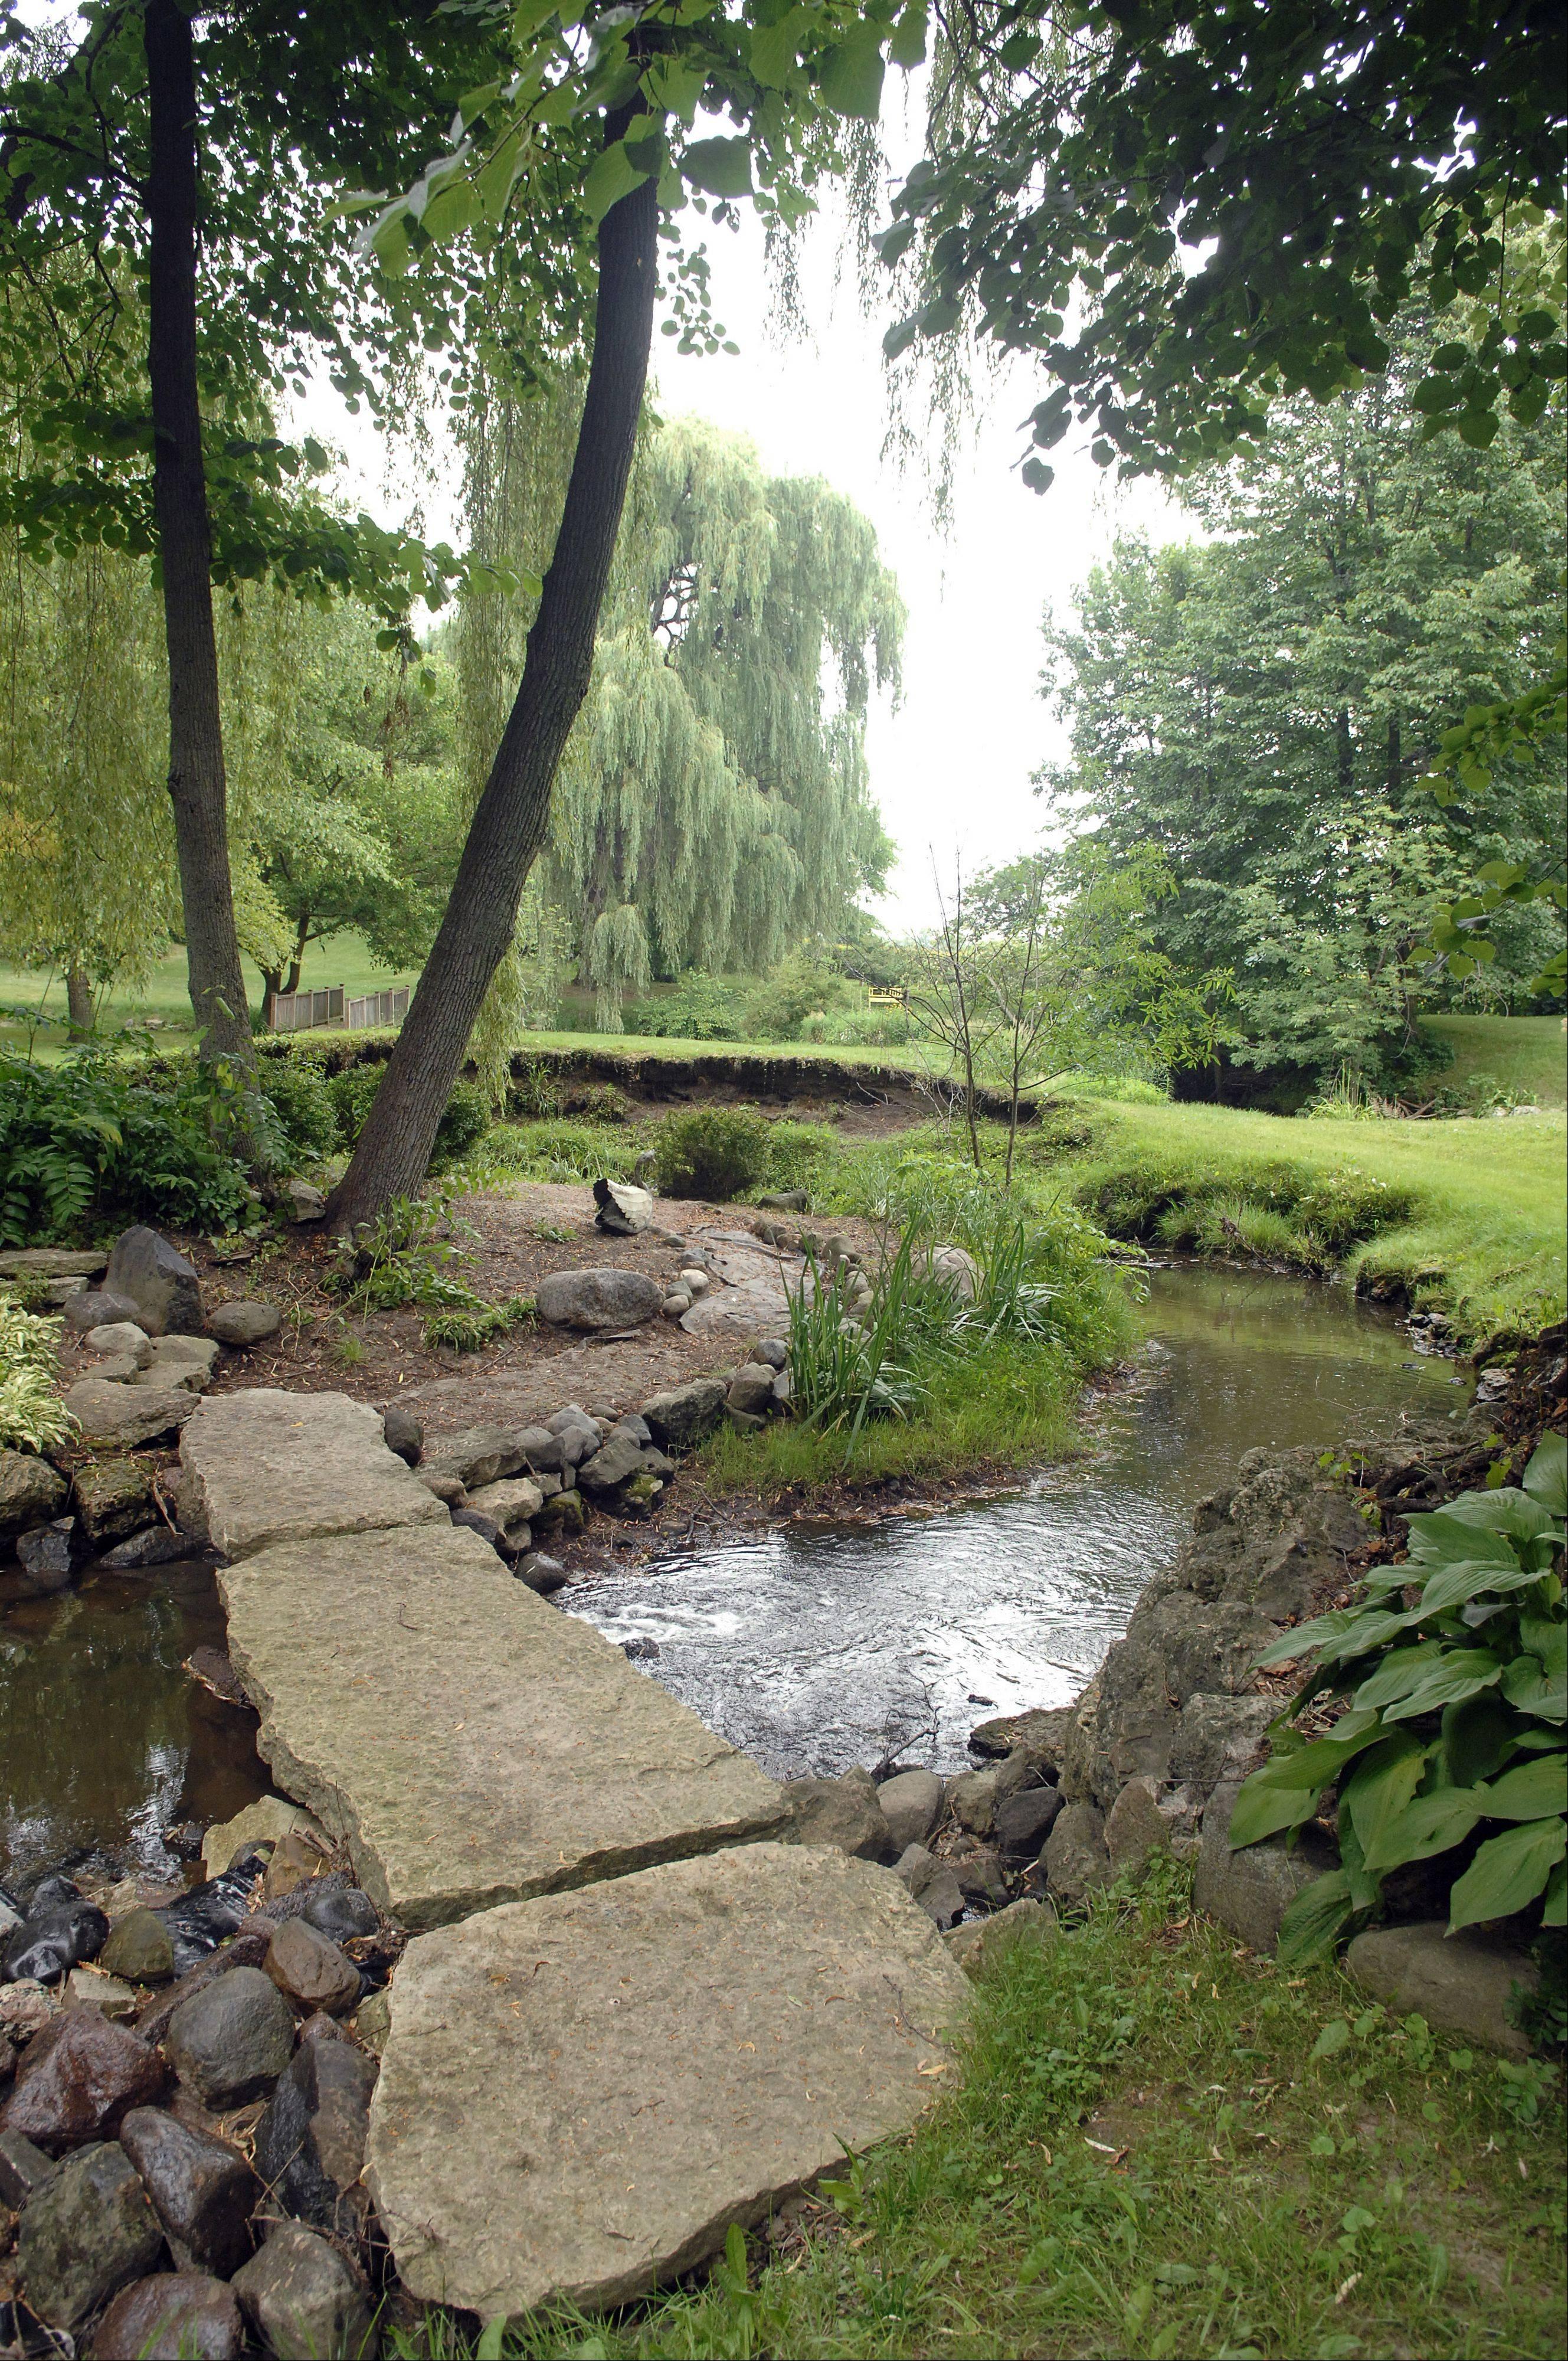 The property of Rachel and Aubrey Neville, of Elgin, will be one of seven featured in a Garden Conservancy Open Days Program on Saturday, July 16. They have been working on over 50 acres of land for decades.